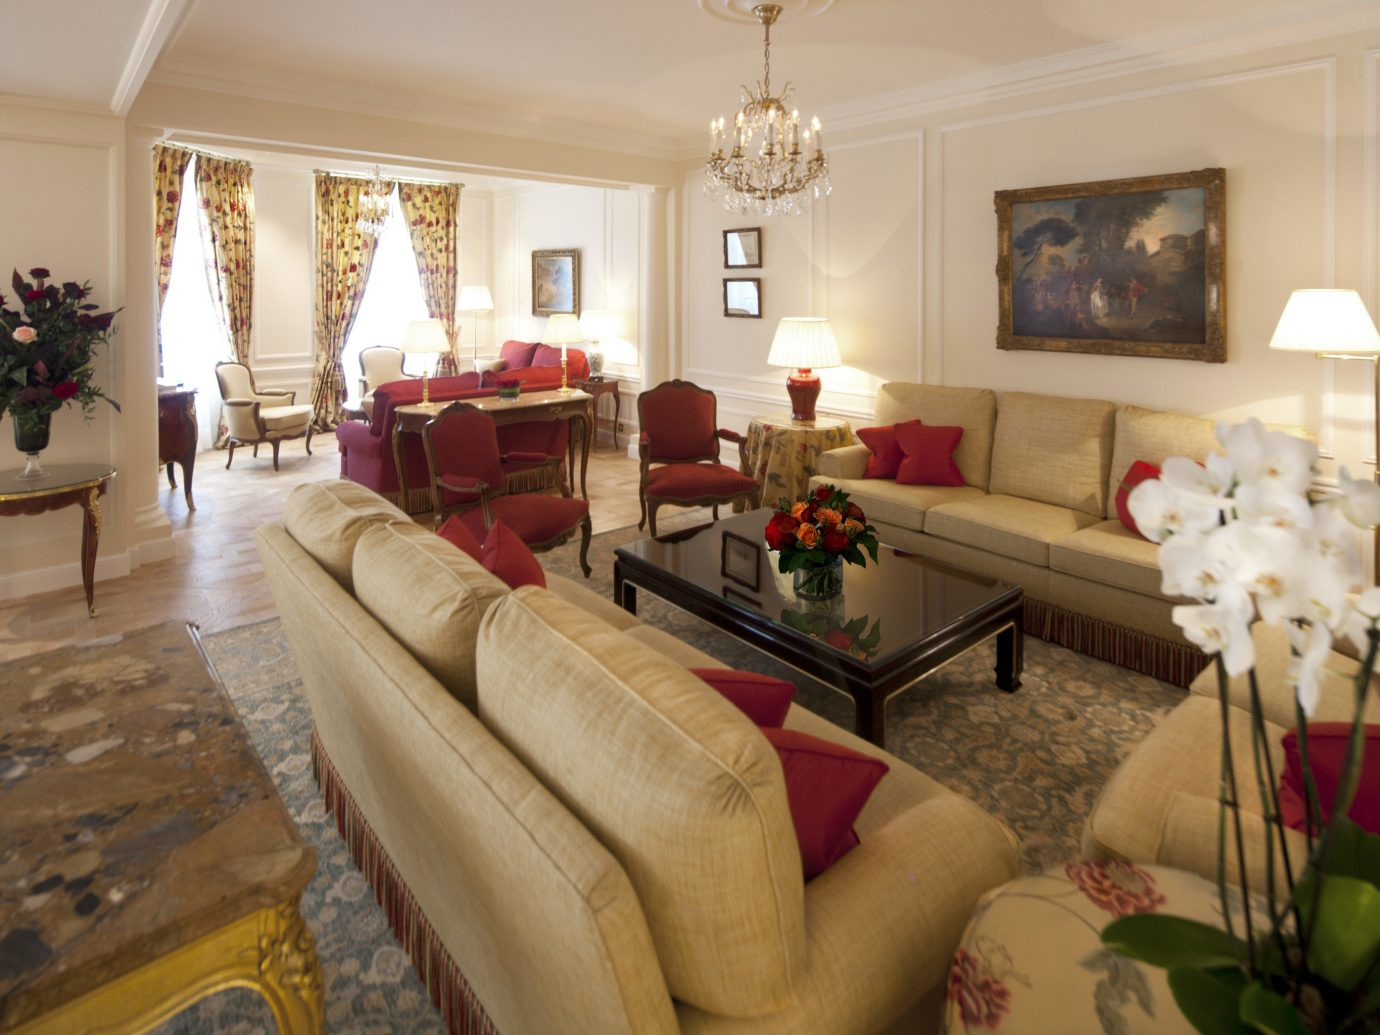 France Hotels Luxury Travel Paris indoor Living wall room floor sofa living room property ceiling interior design home Suite furniture real estate estate flooring table decorated house area flat